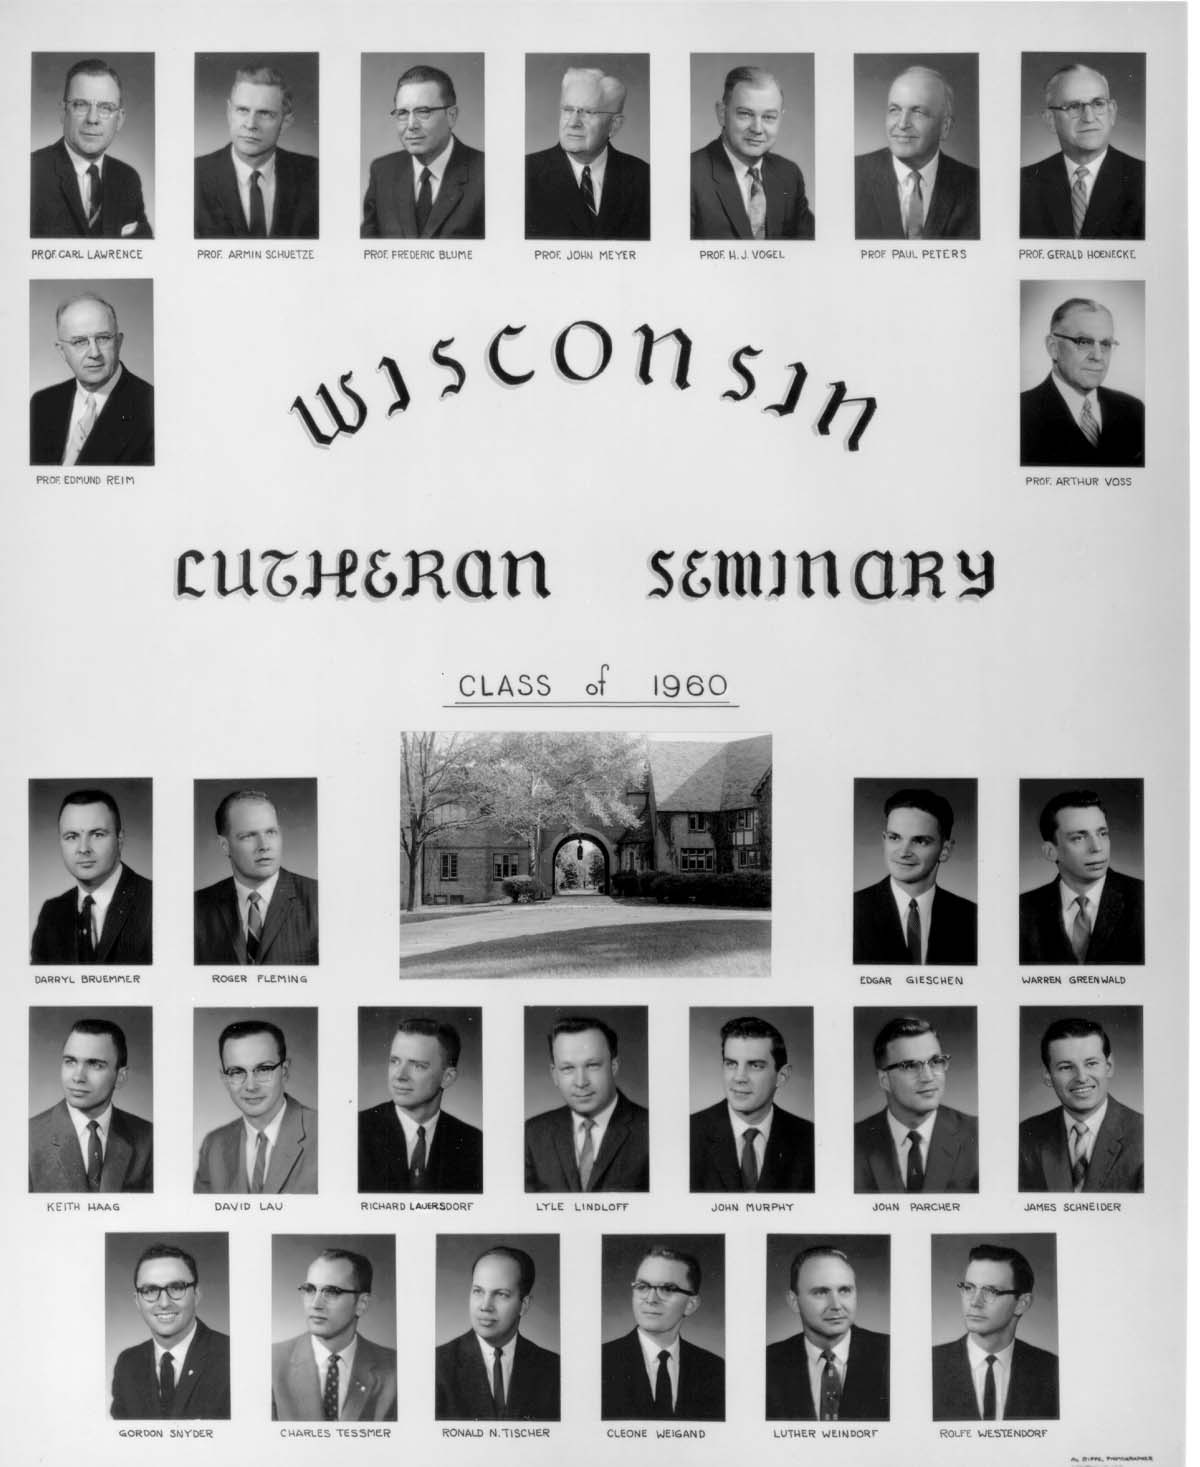 wls seminary essay file Wisconsin evangelical lutheran synod (wels) wels, characterized as theologically conservative, is the third largest lutheran church body in america with national offices today at 2929 n mayfair rd, milwaukee, wi, wels began in 1850 when three german pastors met in milwaukee.